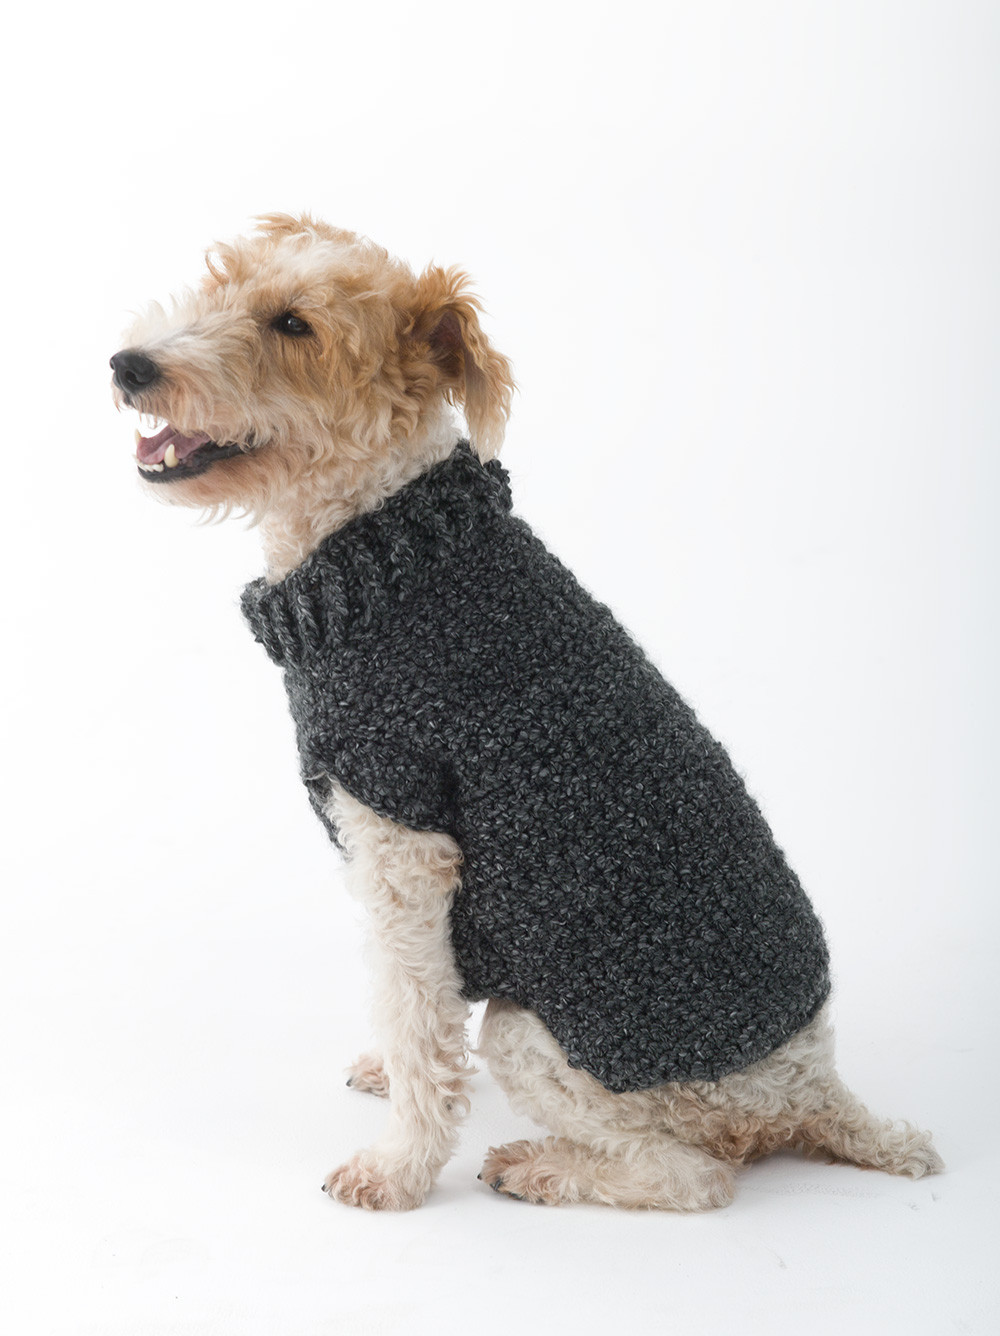 Dog Sweater Knitting Pattern Awesome Keep Your Dog Warm with A Crochet Dog Sweater Crochet Of Superb 38 Pictures Dog Sweater Knitting Pattern